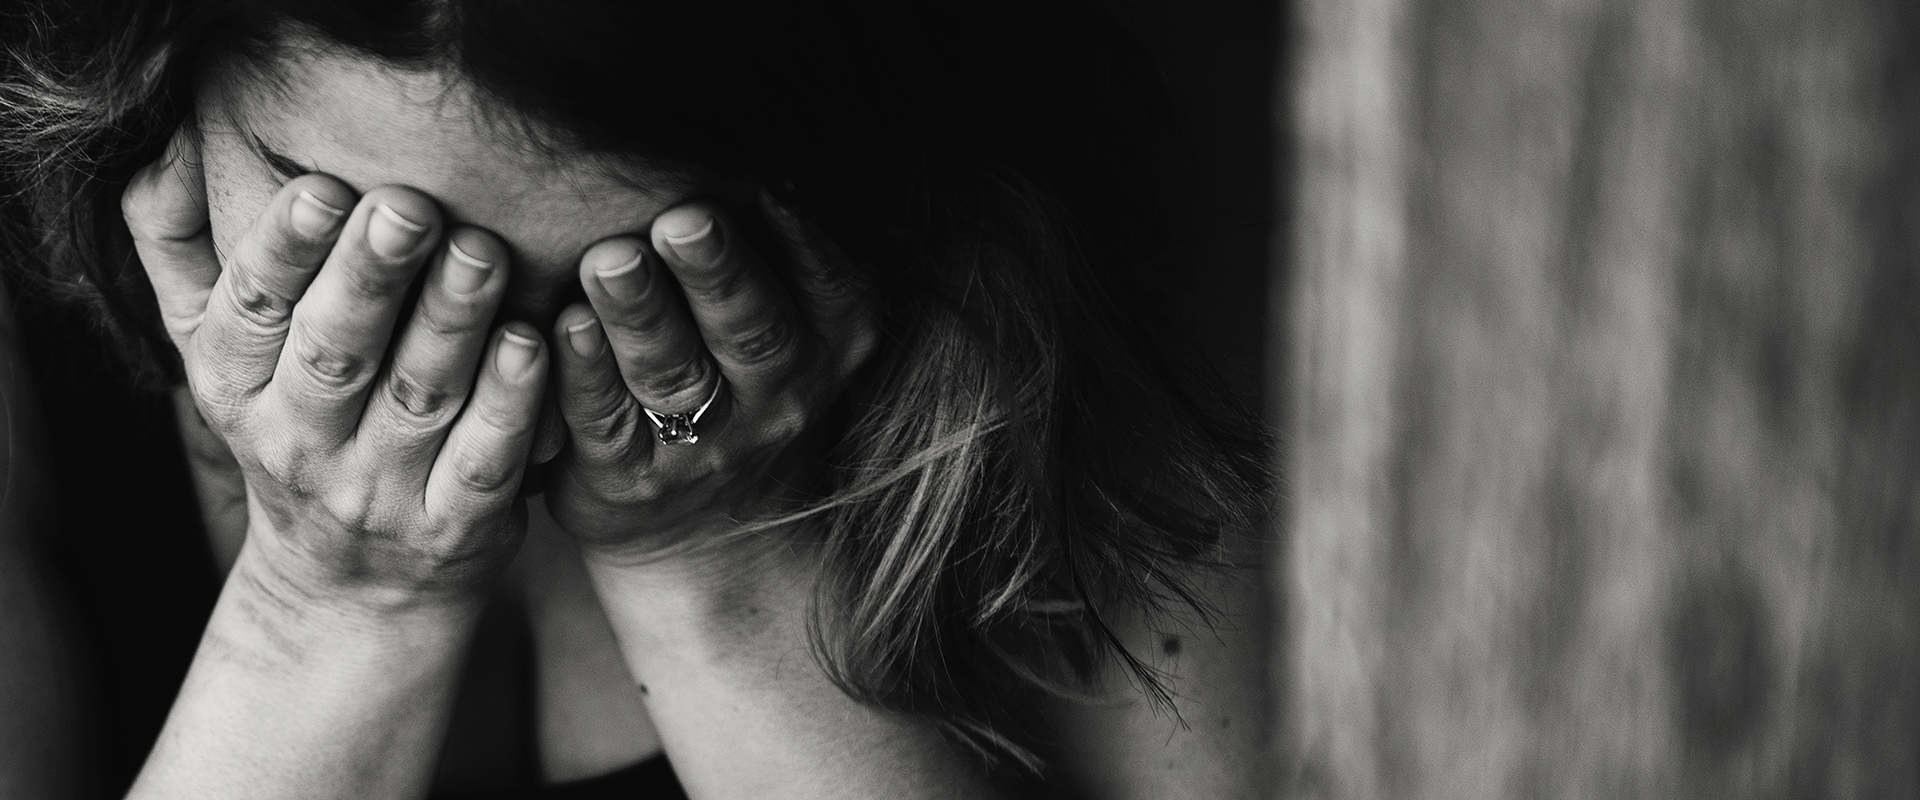 SURVIVING GRIEF, DOMESTIC VIOLENCE, AND TERMINAL CANCER